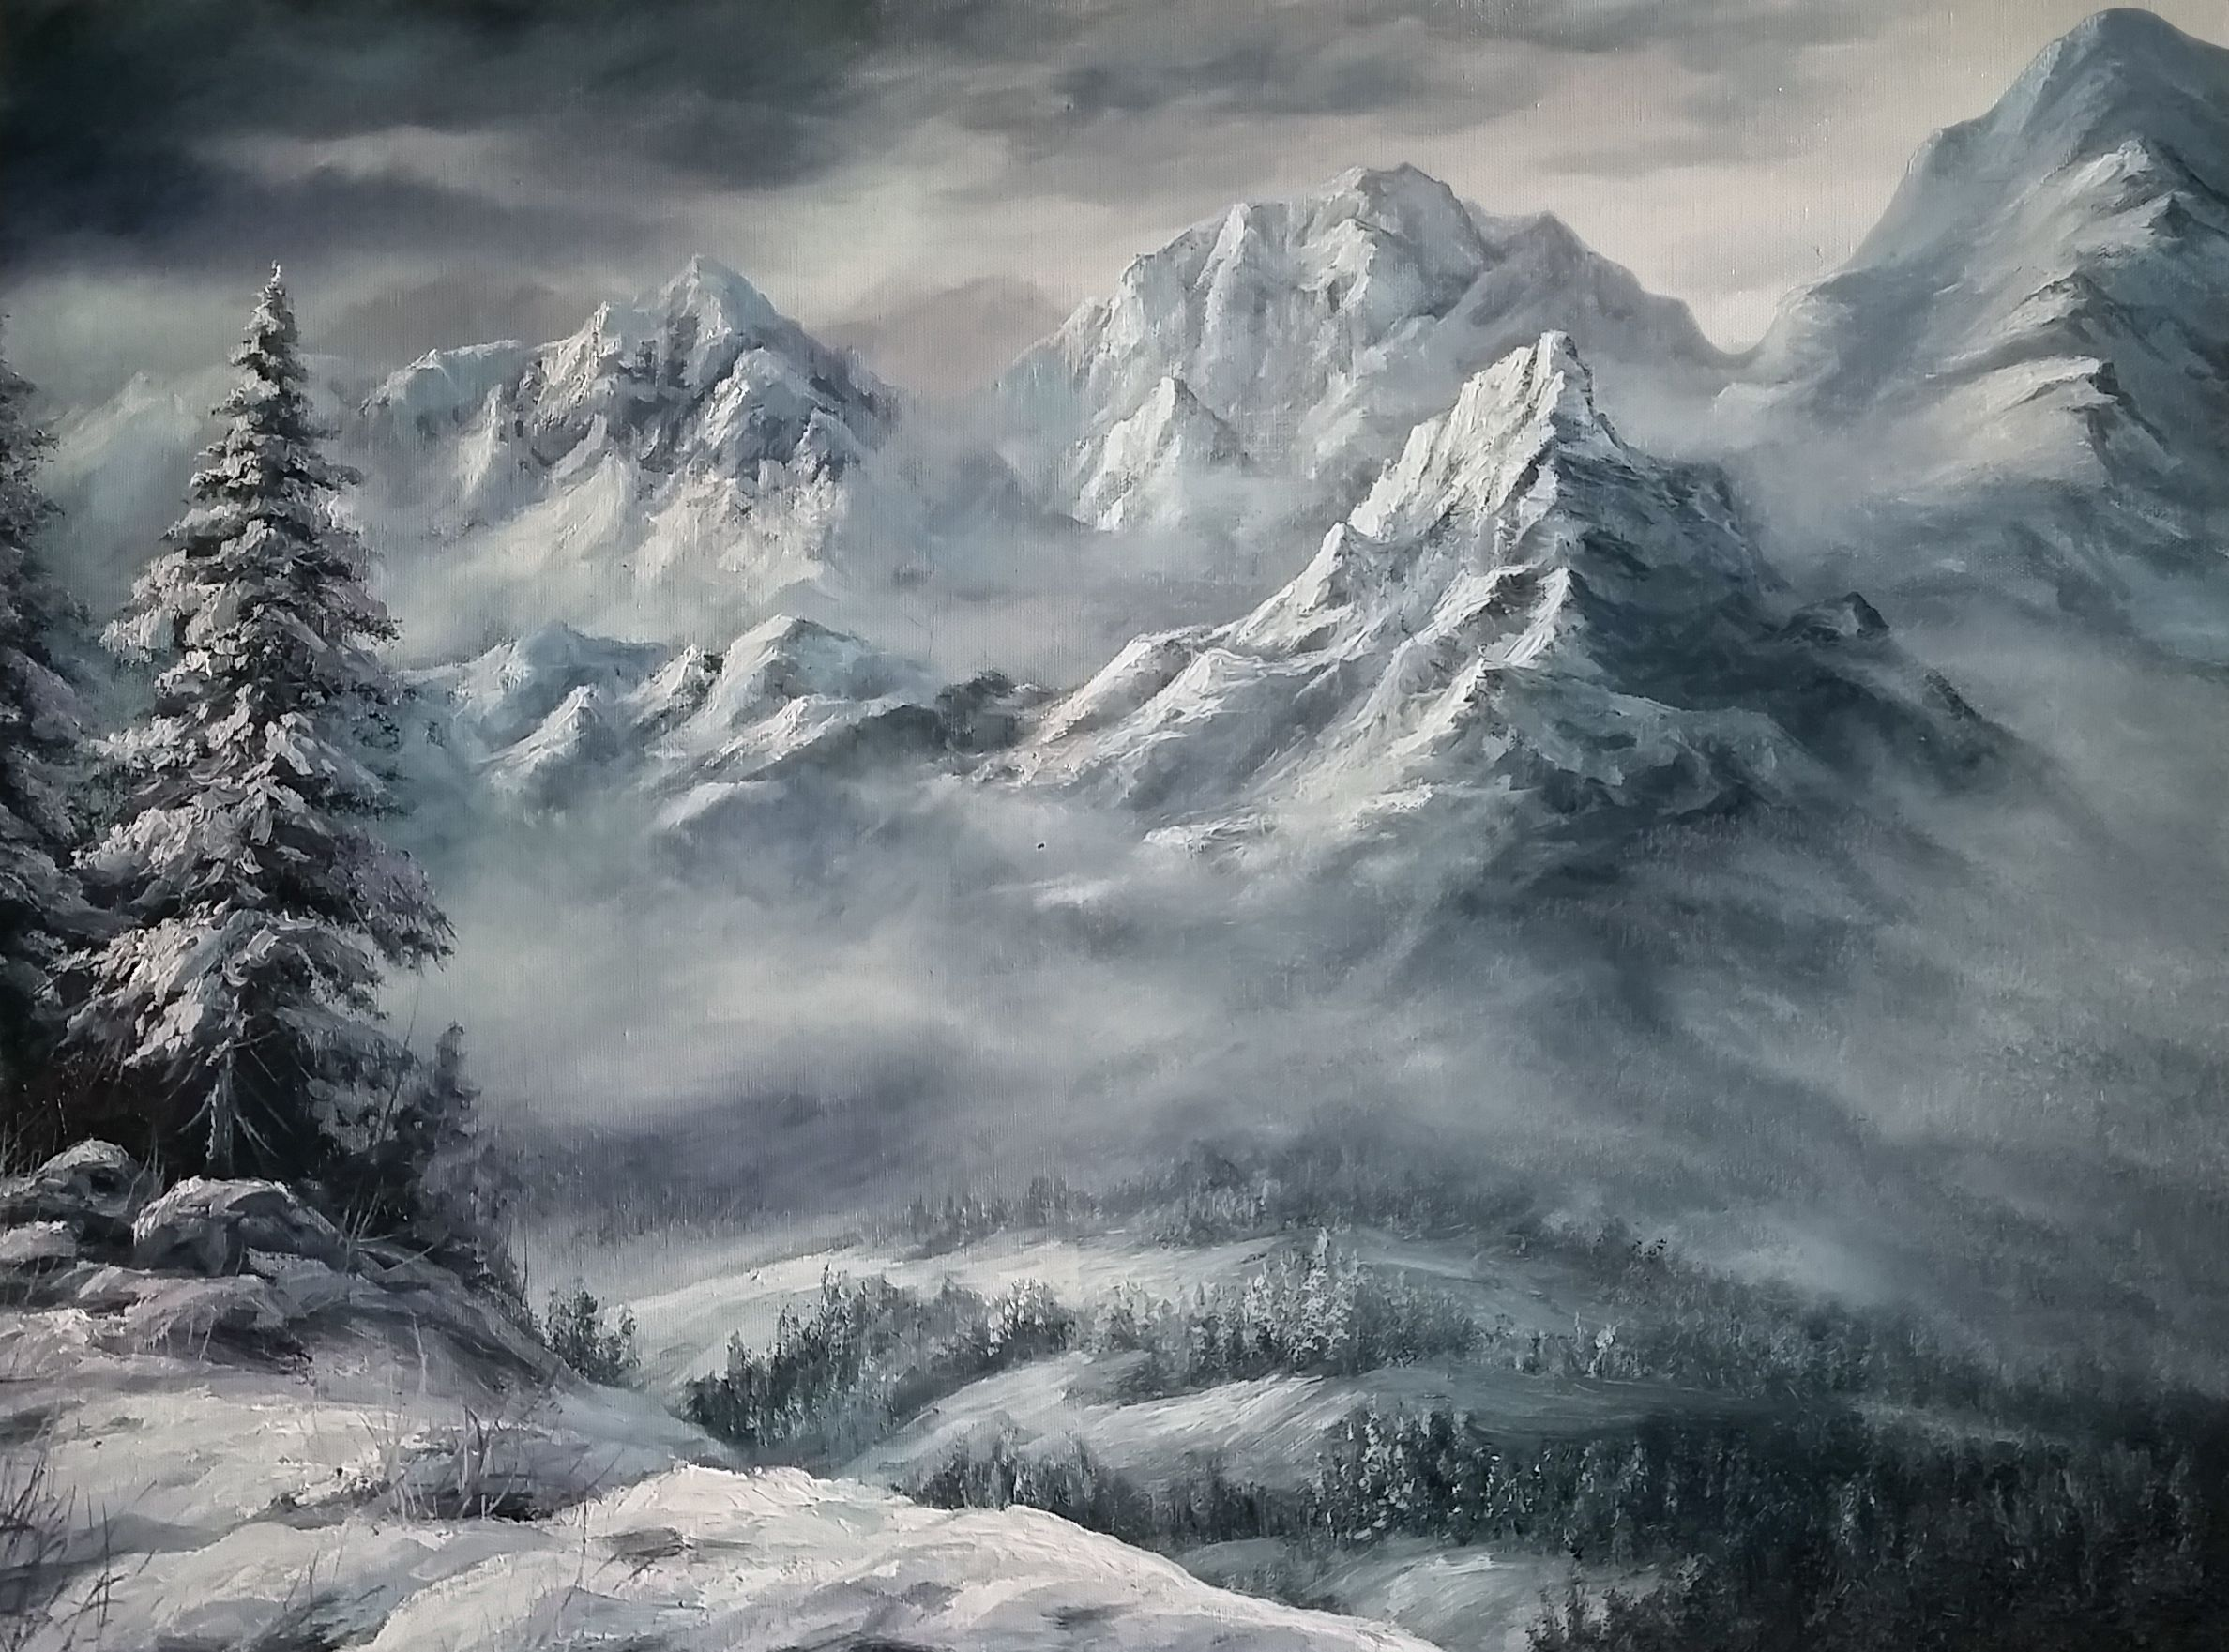 Snowy Mountains Oil Painting By Kevin Hill Watch Short Oil Painting Lessons On Youtube K Kevin Hill Paintings Mountain Paintings Landscape Paintings Acrylic